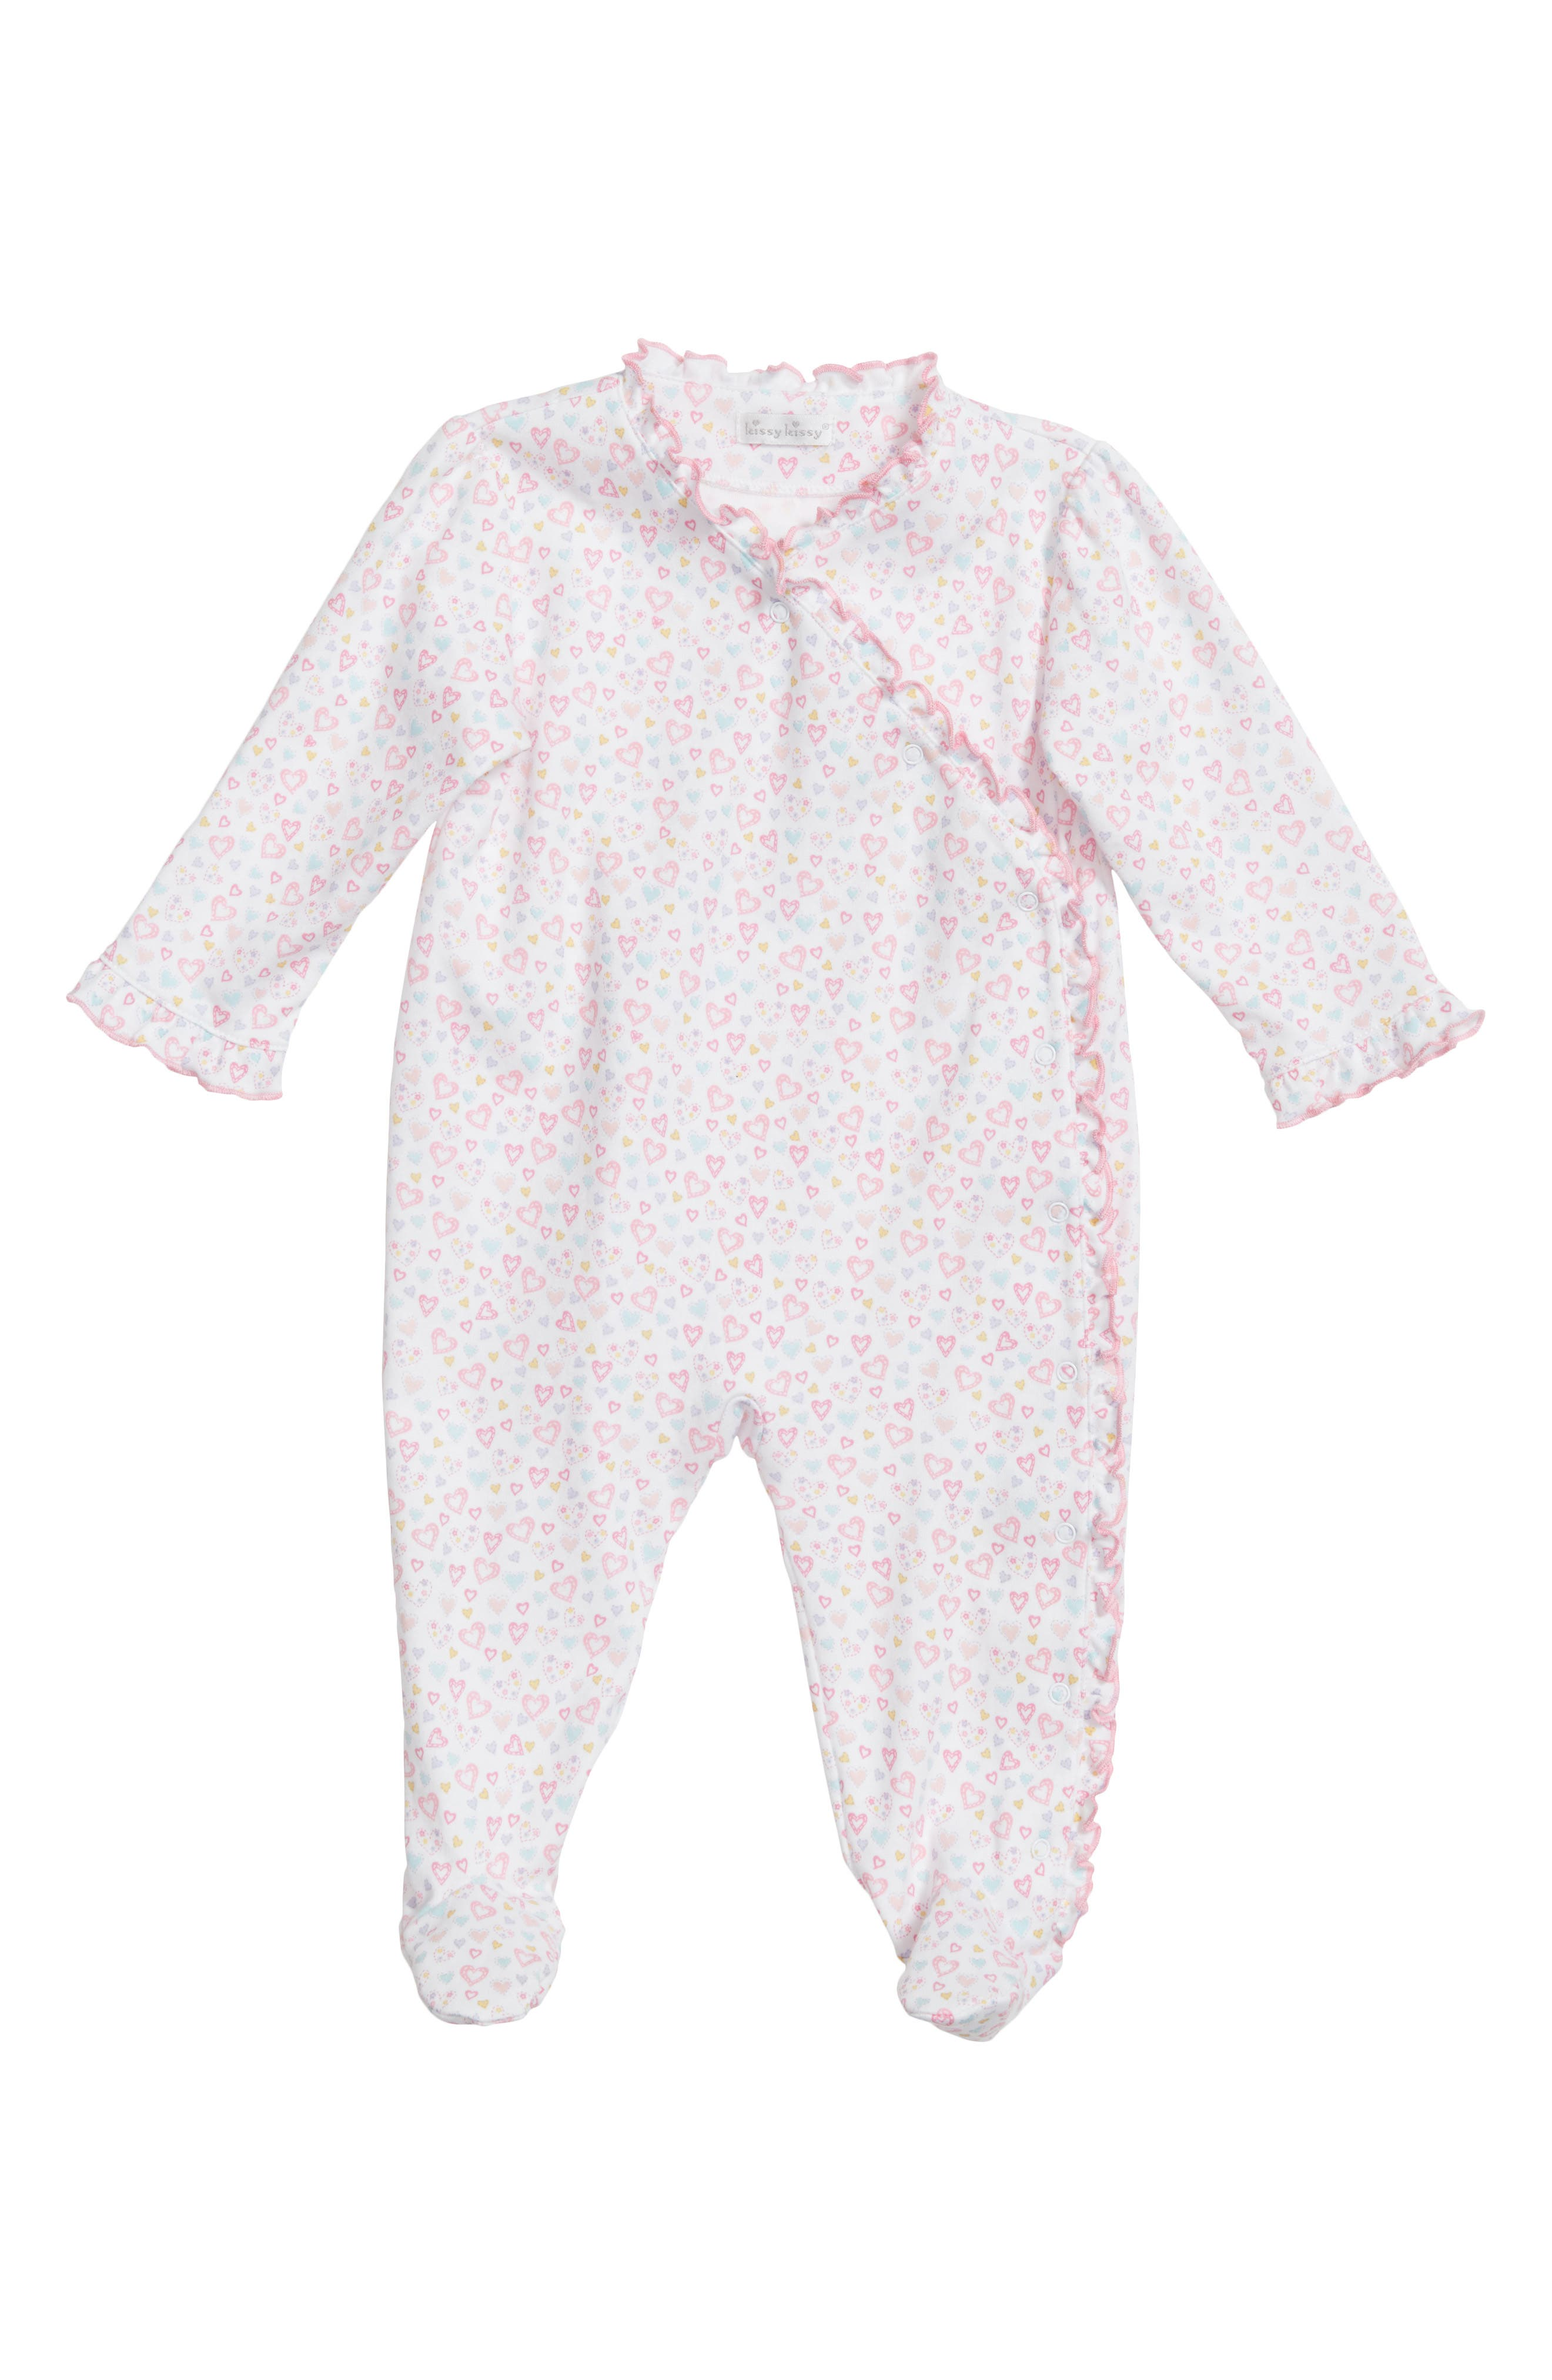 Dina Heart Darling Ruffle Footie,                             Main thumbnail 1, color,                             650